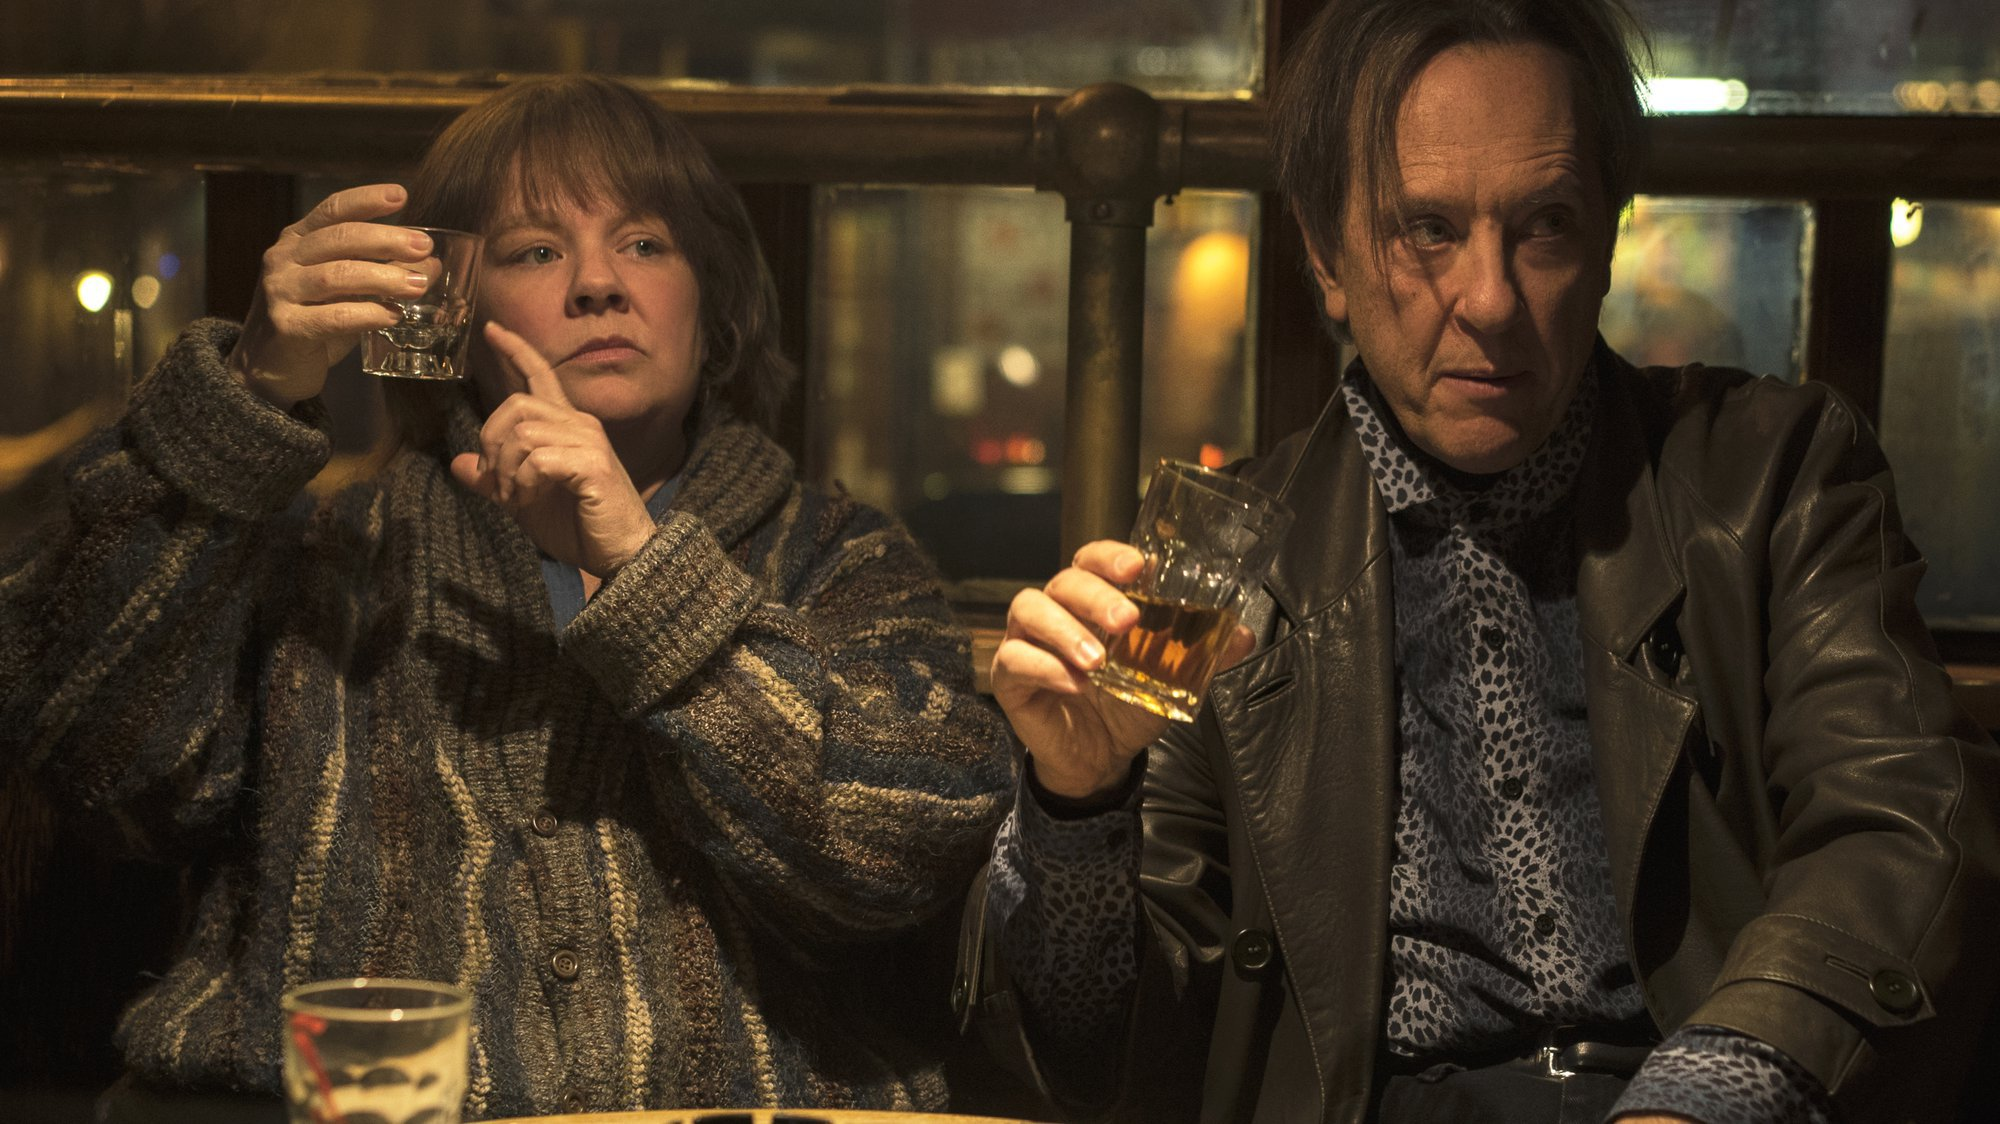 Screen25 Spring/Summer Season 2019: CAN YOU EVER FORGIVE ME? (28 JUN 19:45).